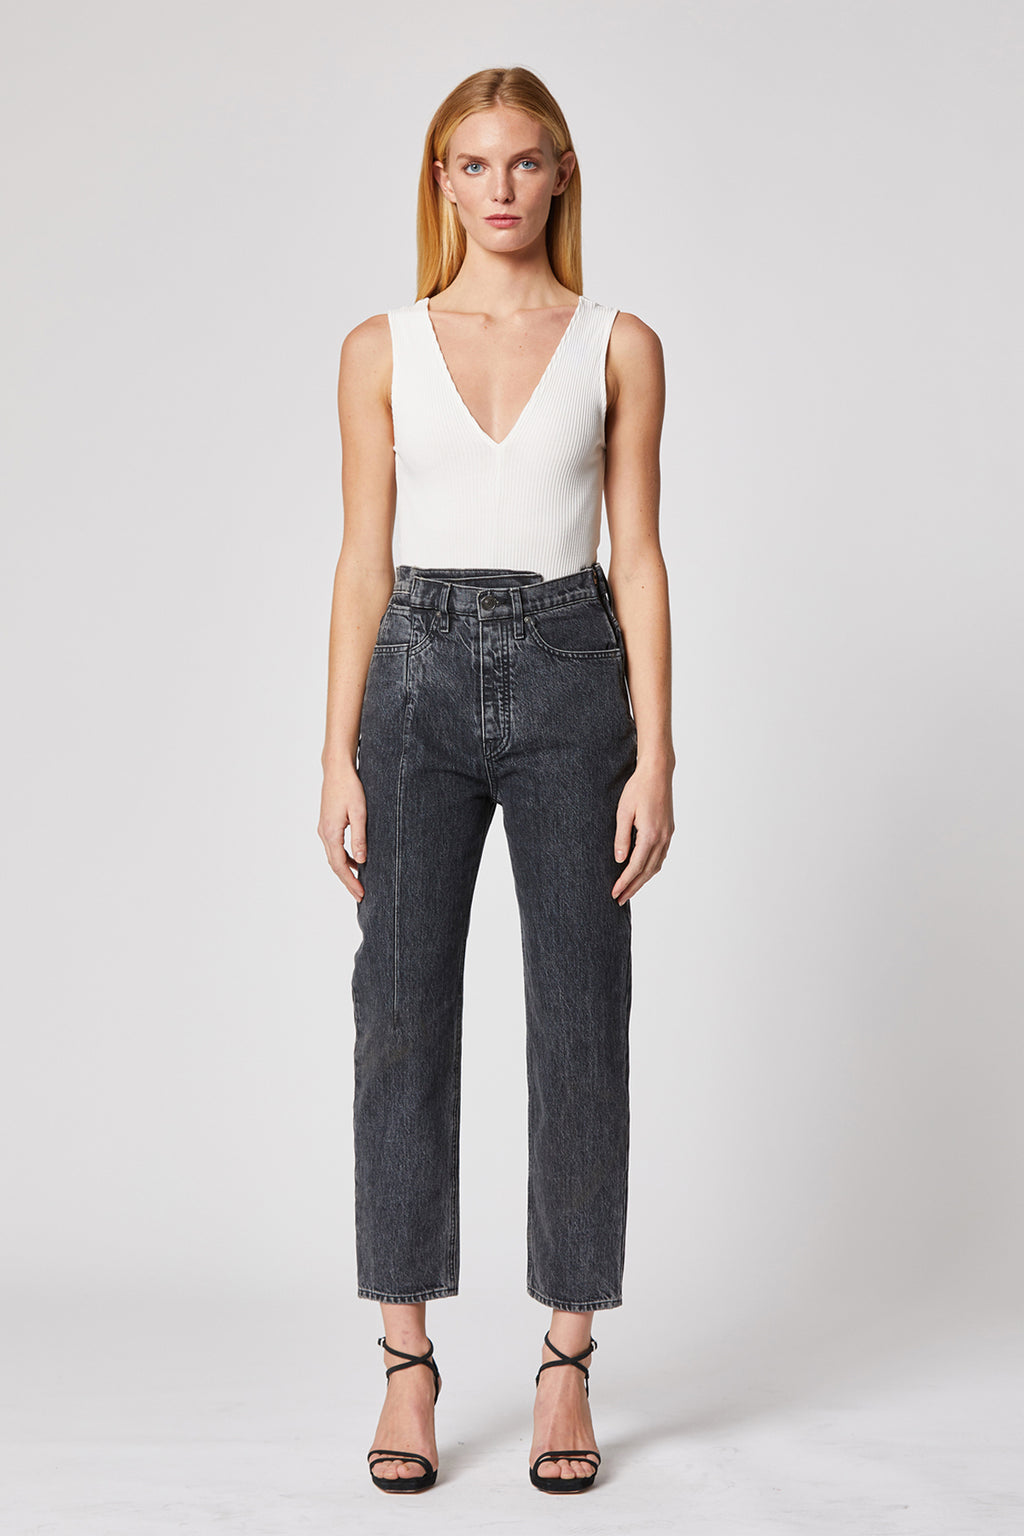 Elly Folded Crop Jean